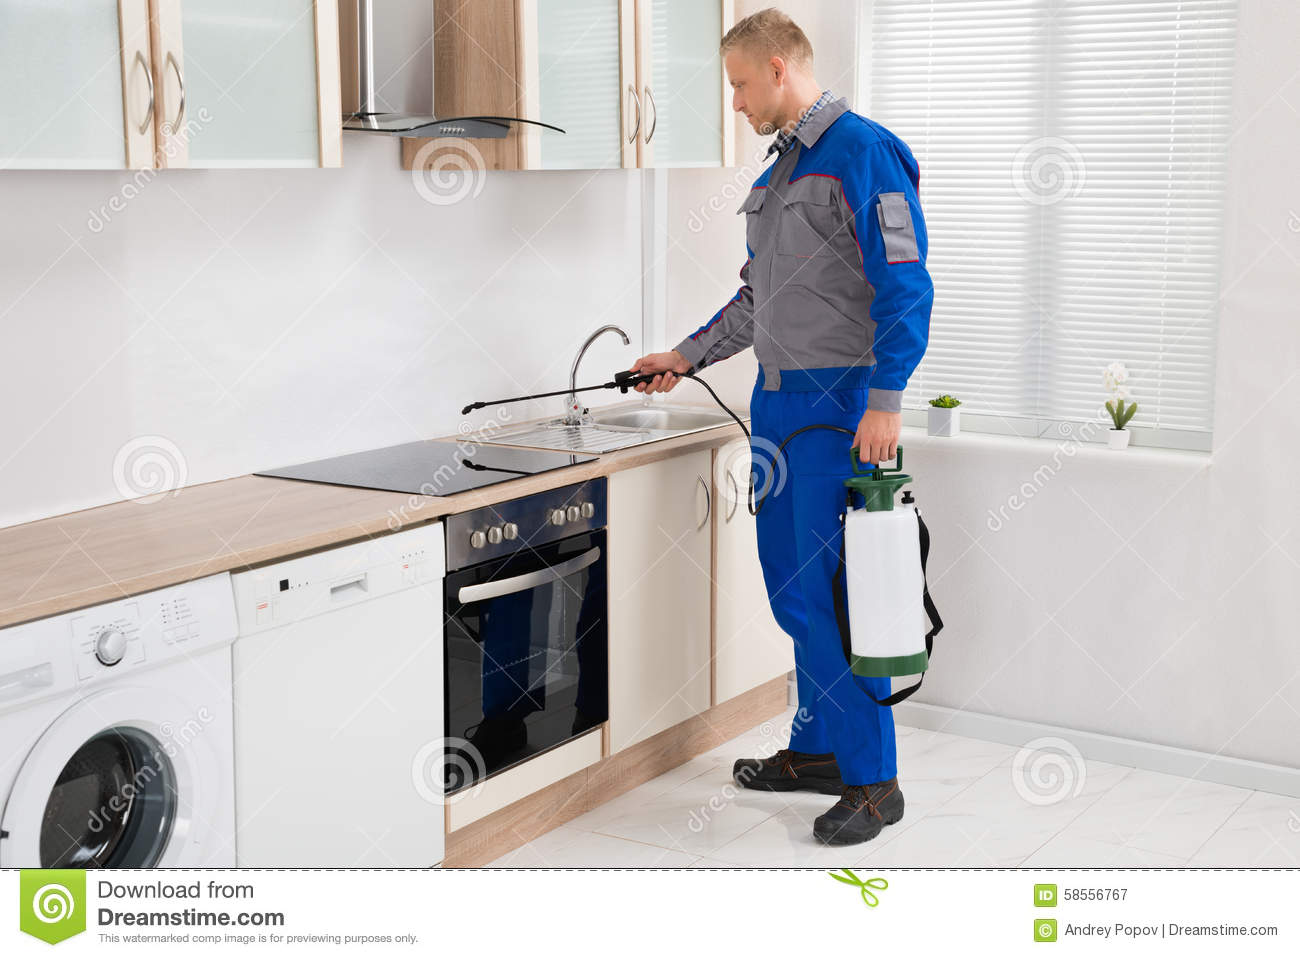 Pest Control Worker Spraying Pesticide On Induction Hob